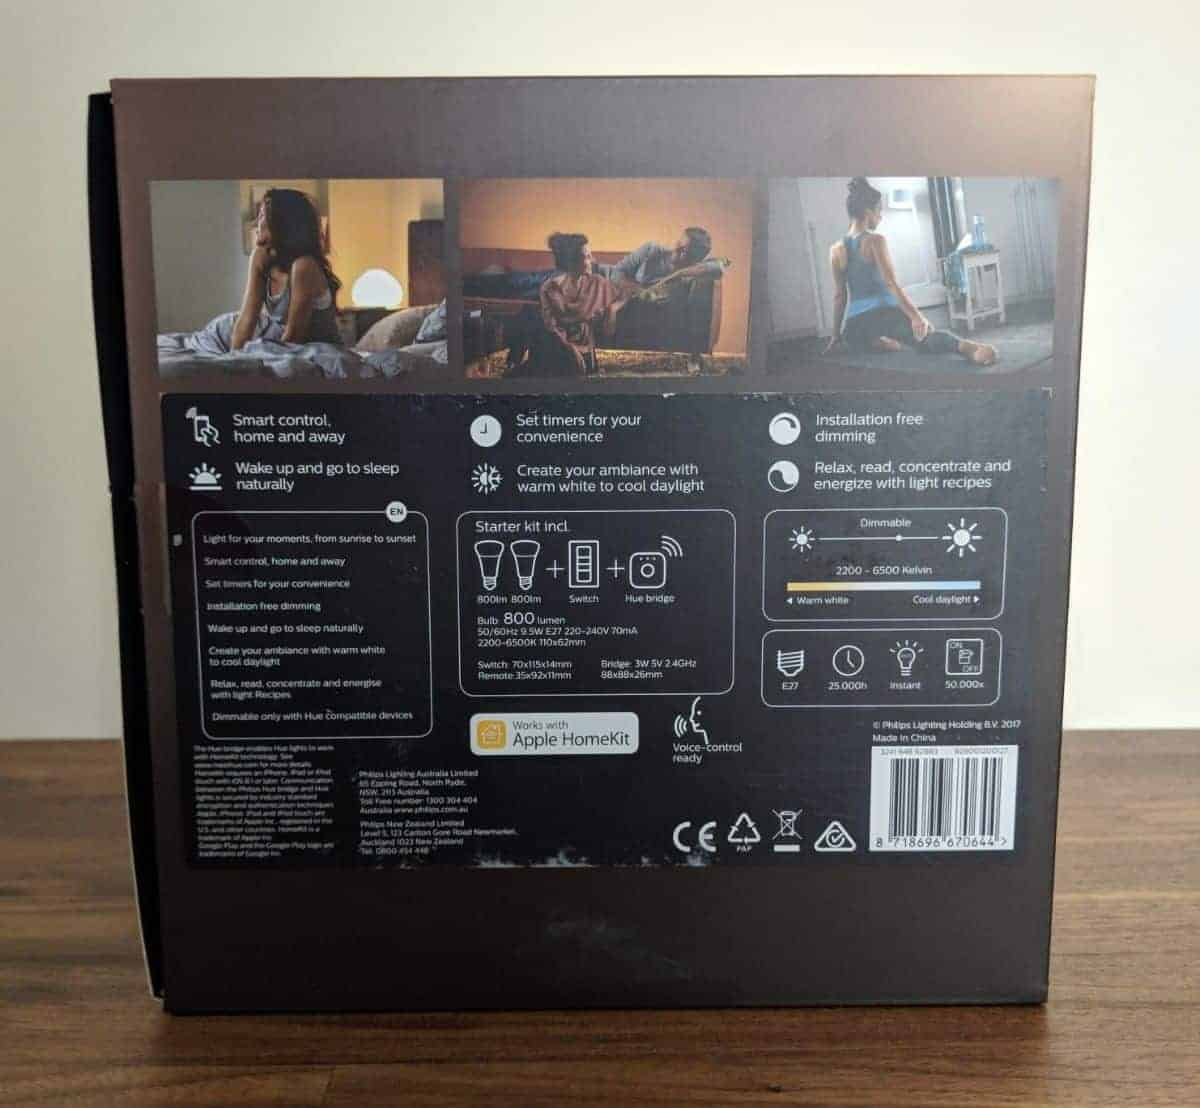 Philips-Hue-Ambiance-Photos-2 Philips Hue Review Part 2